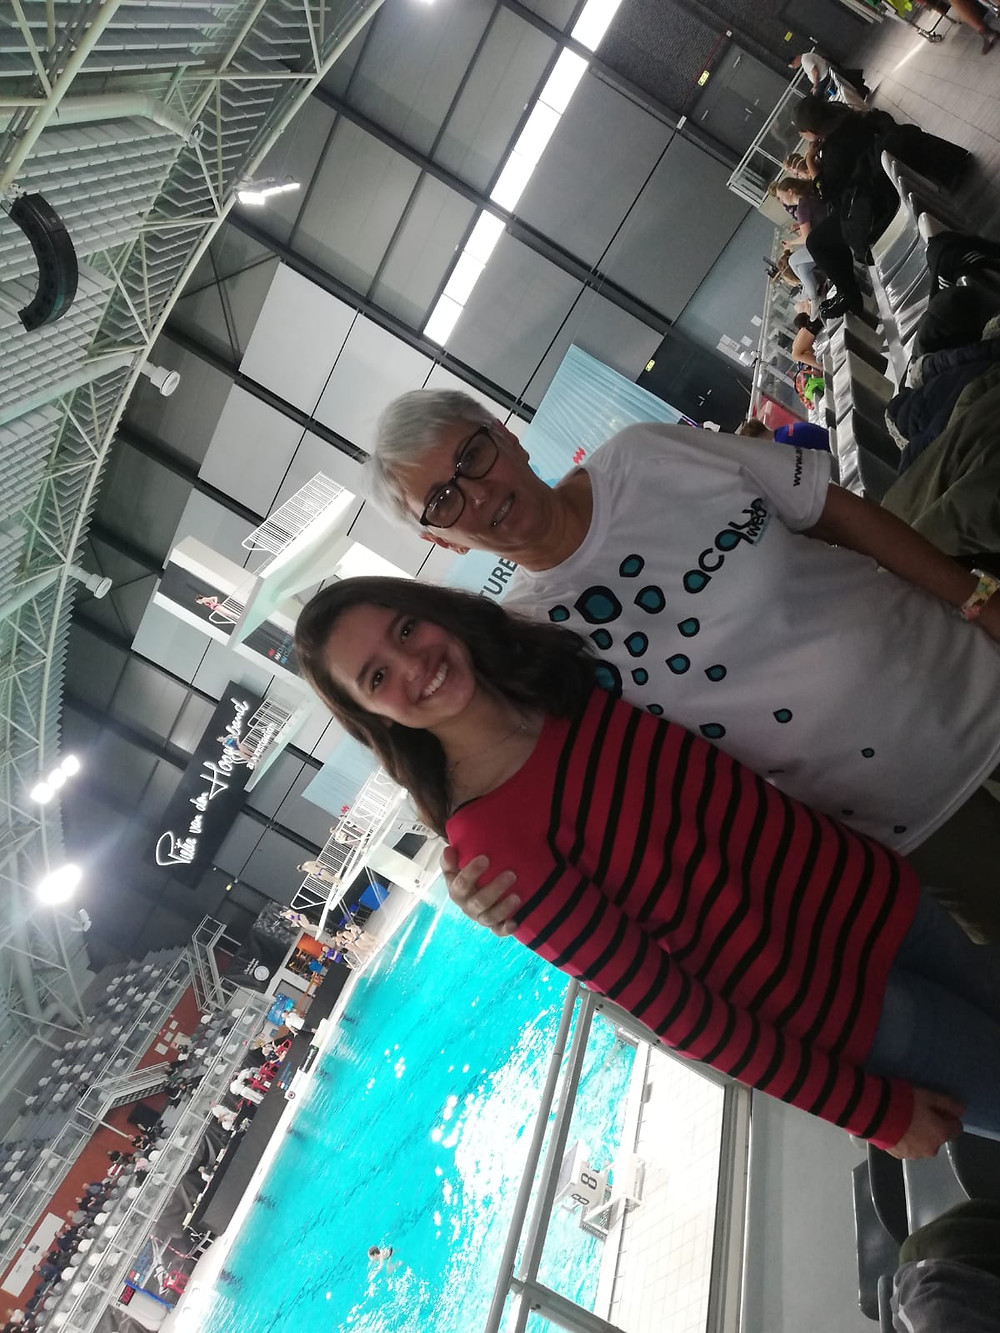 Mary-Ann van Grinsven is a customer of Acquawear swimwear UK shop and we provided her with synchronised swimming competition swimsuits for solo and duet